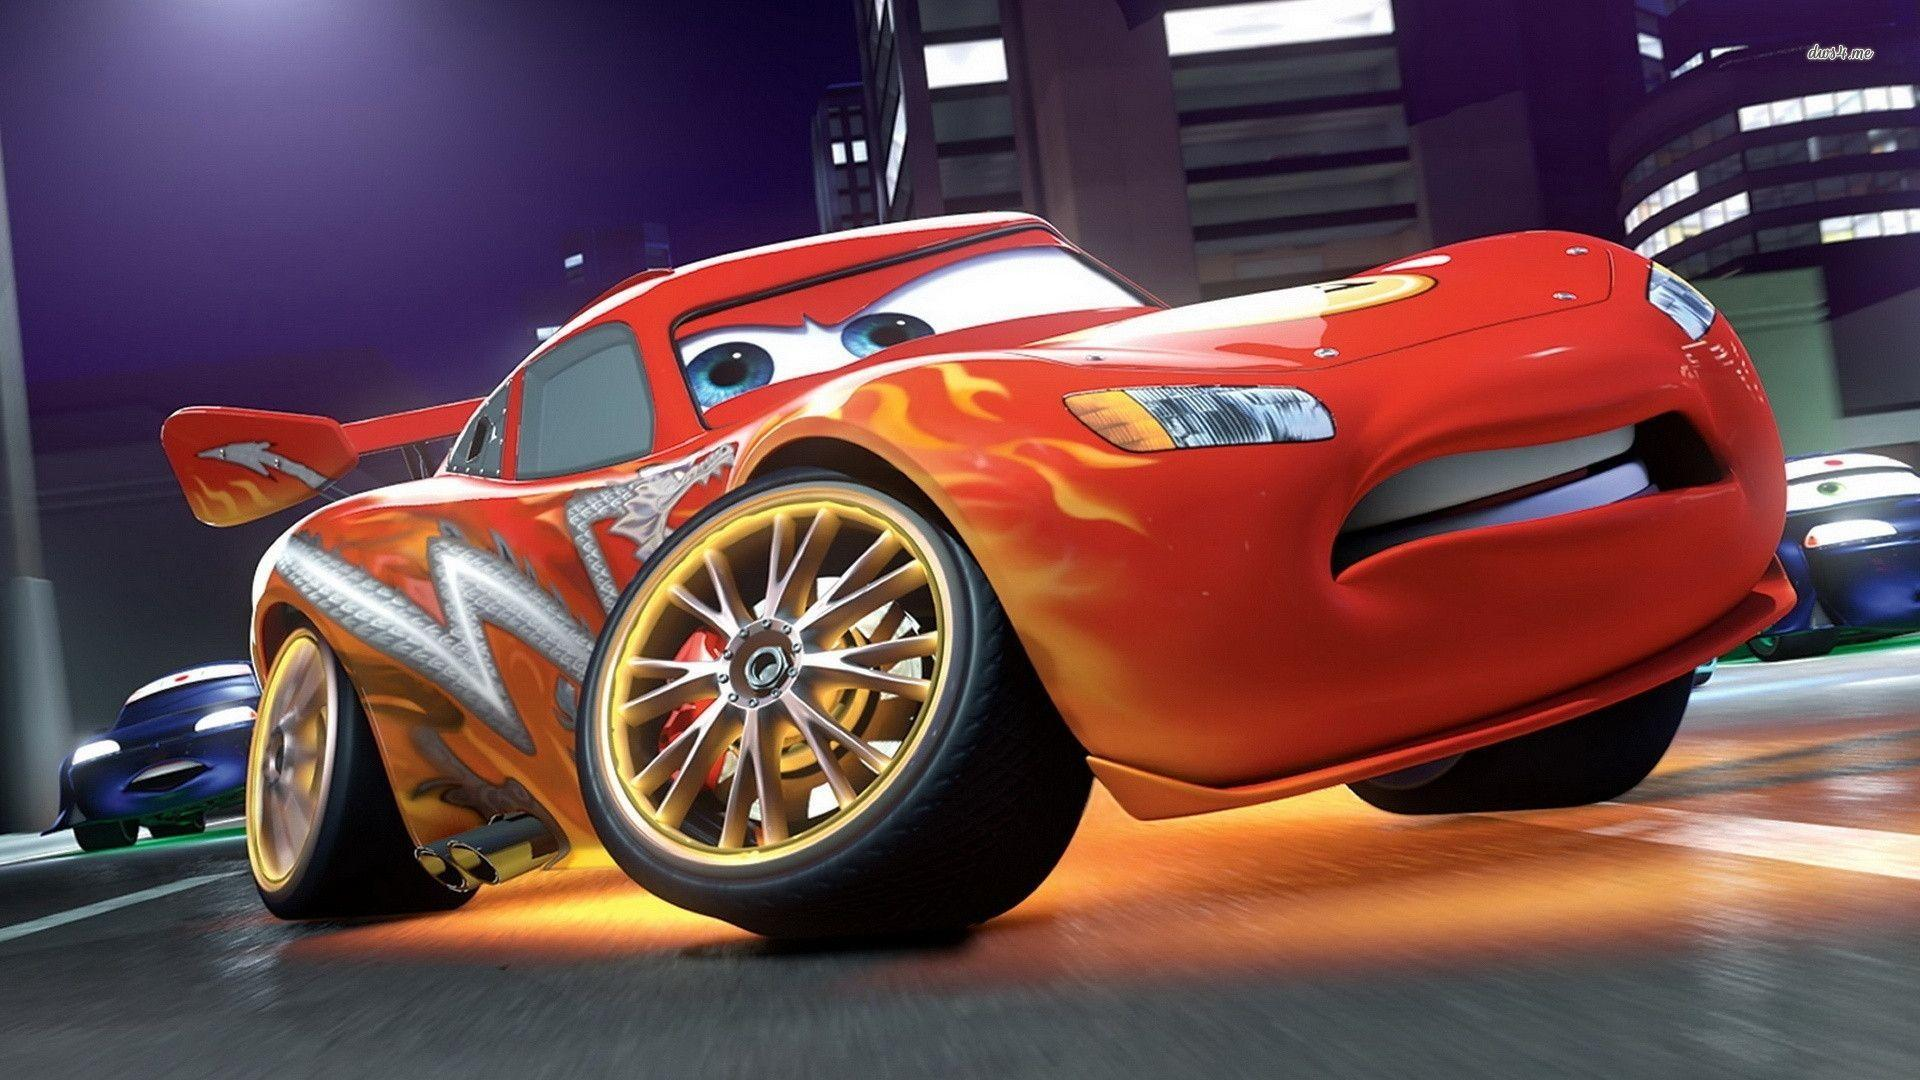 Lightning Mcqueen Cars 2 Wallpaper Cartoon Wallpapers 10280 ...